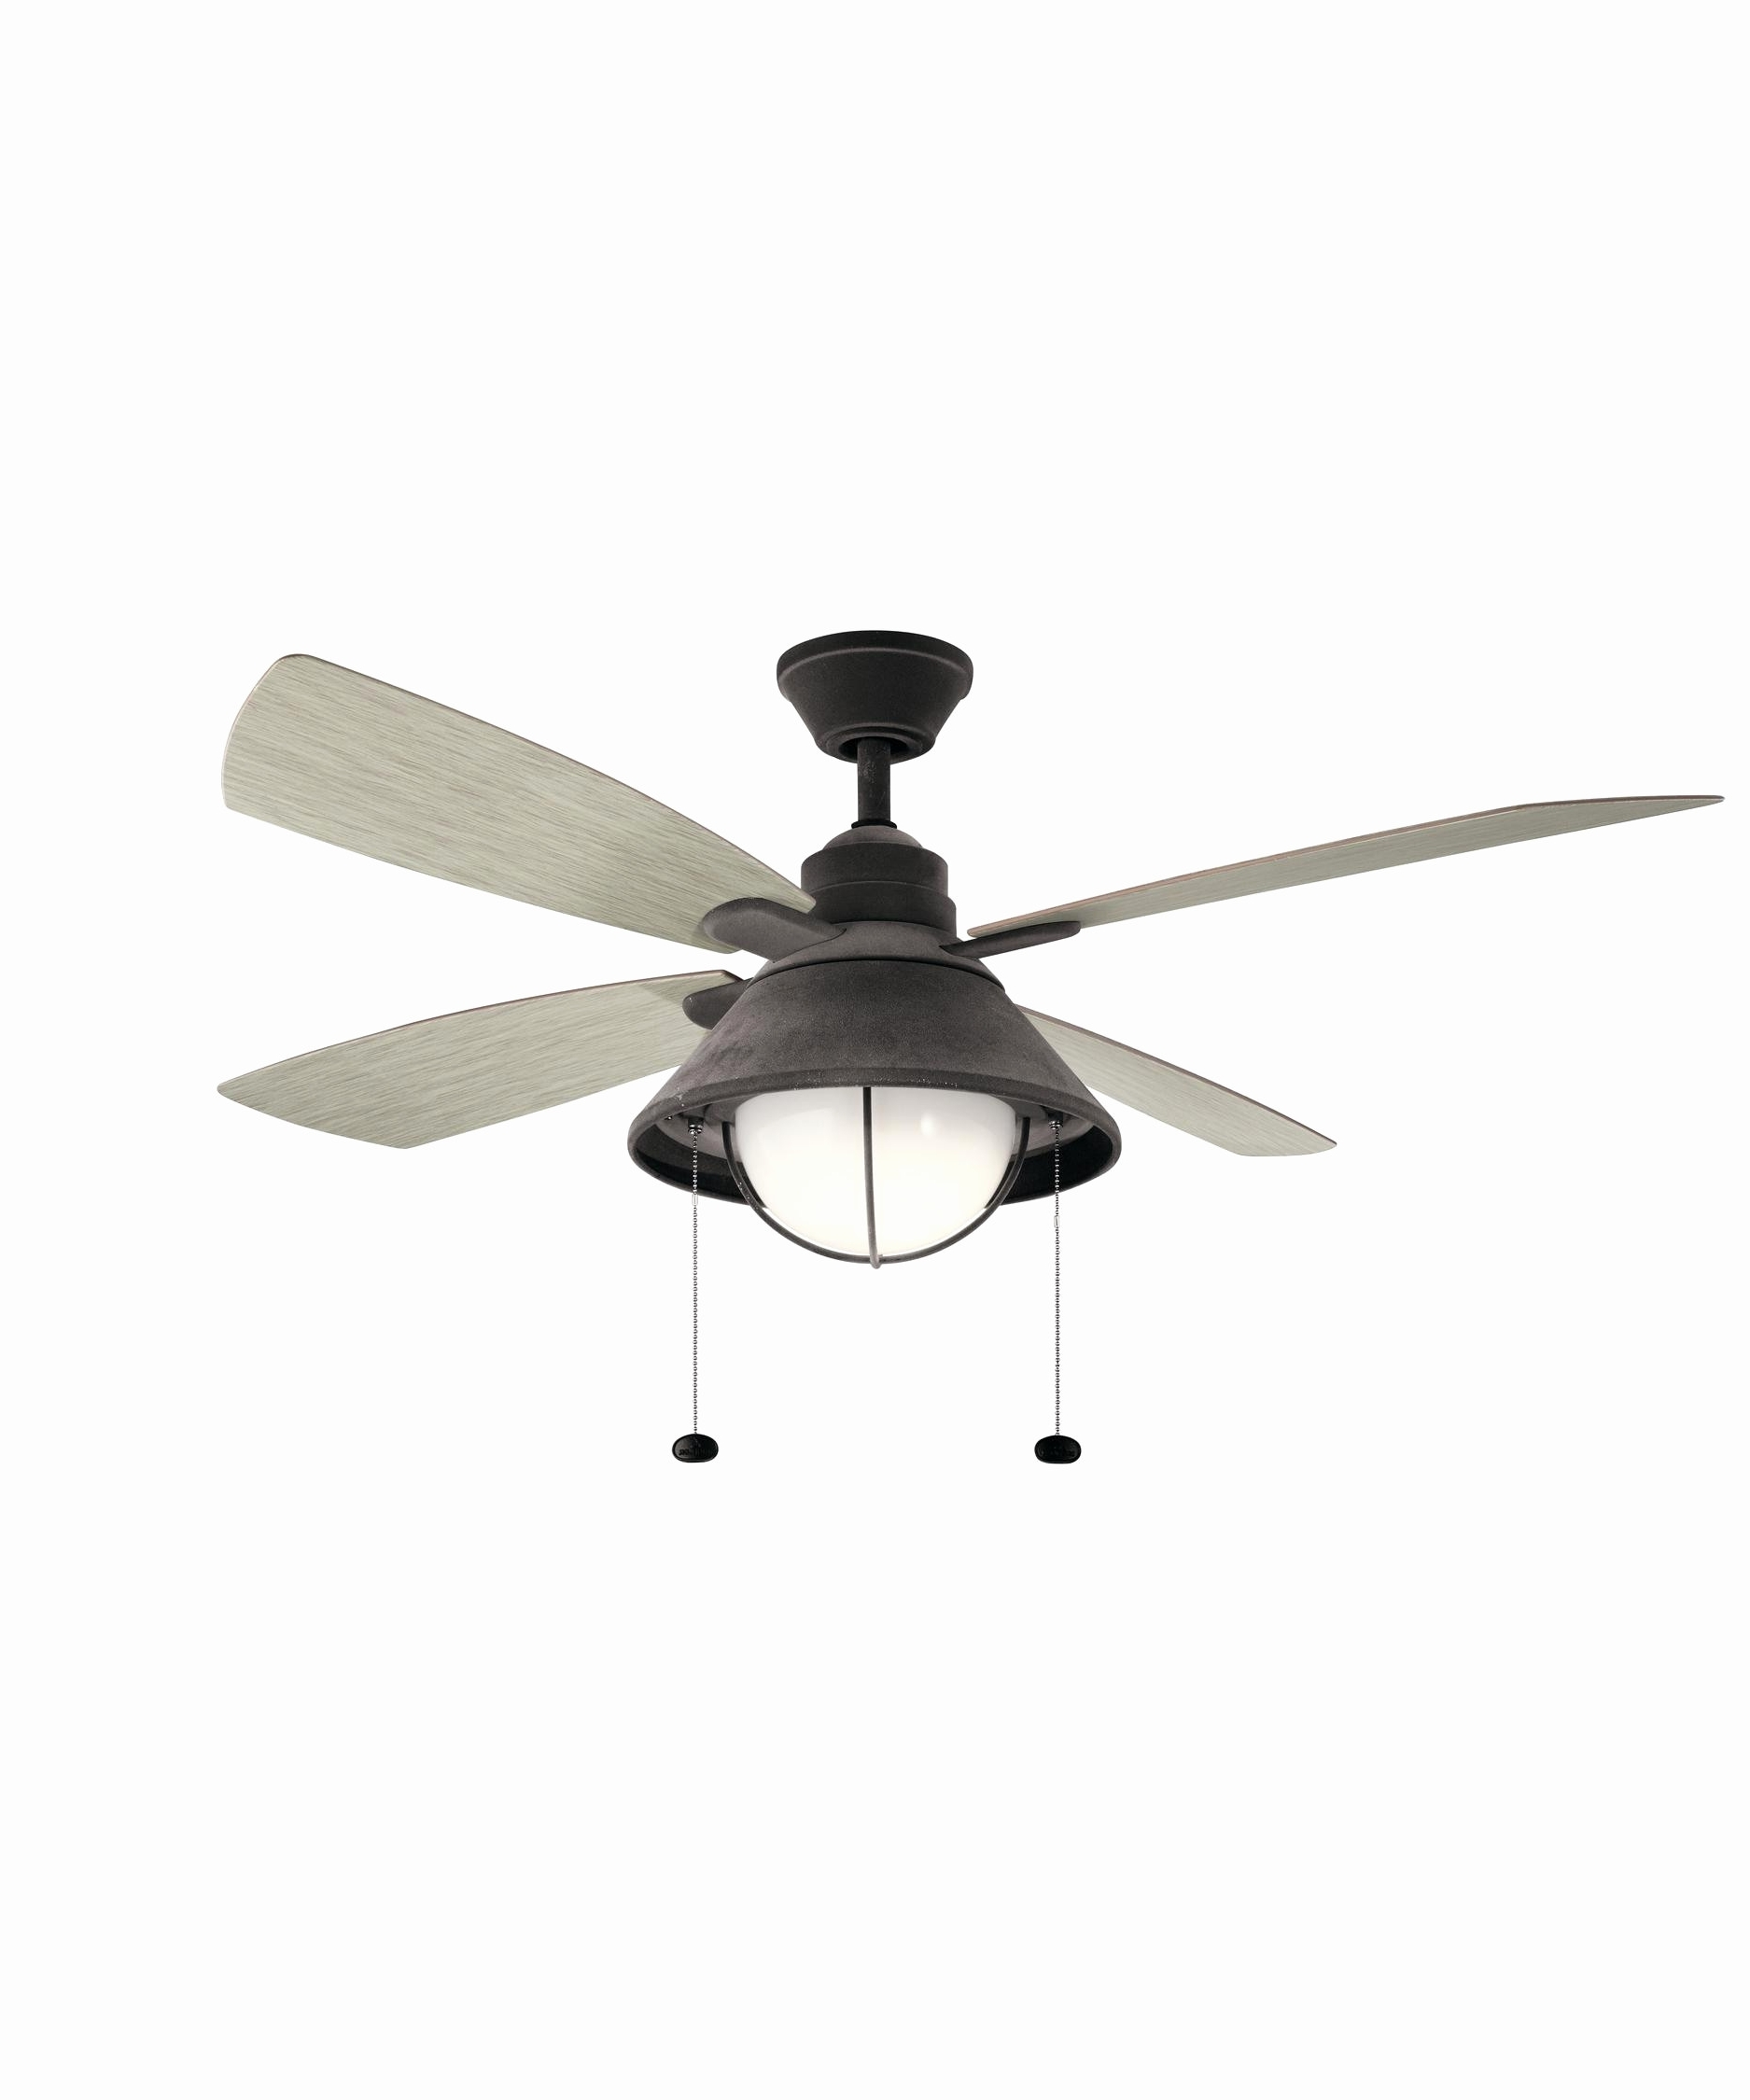 High Cfm Outdoor Ceiling Fan Inspirational Kichler Seaside 52 Inch 4 With Regard To 2019 Outdoor Ceiling Fans With High Cfm (View 4 of 20)